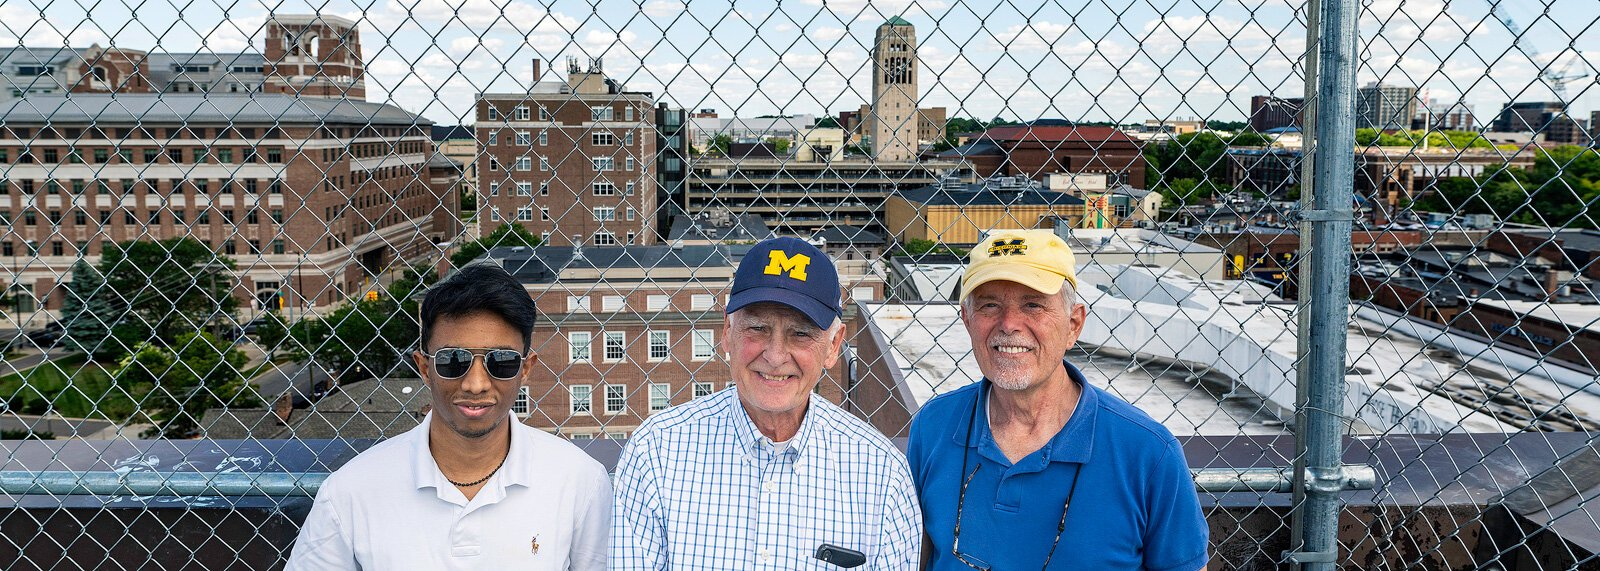 Kazi Najeeb Hasan, Peter Allen, and Doug Kelbaugh at a potential development site on top of the Liberty Square parking structure.